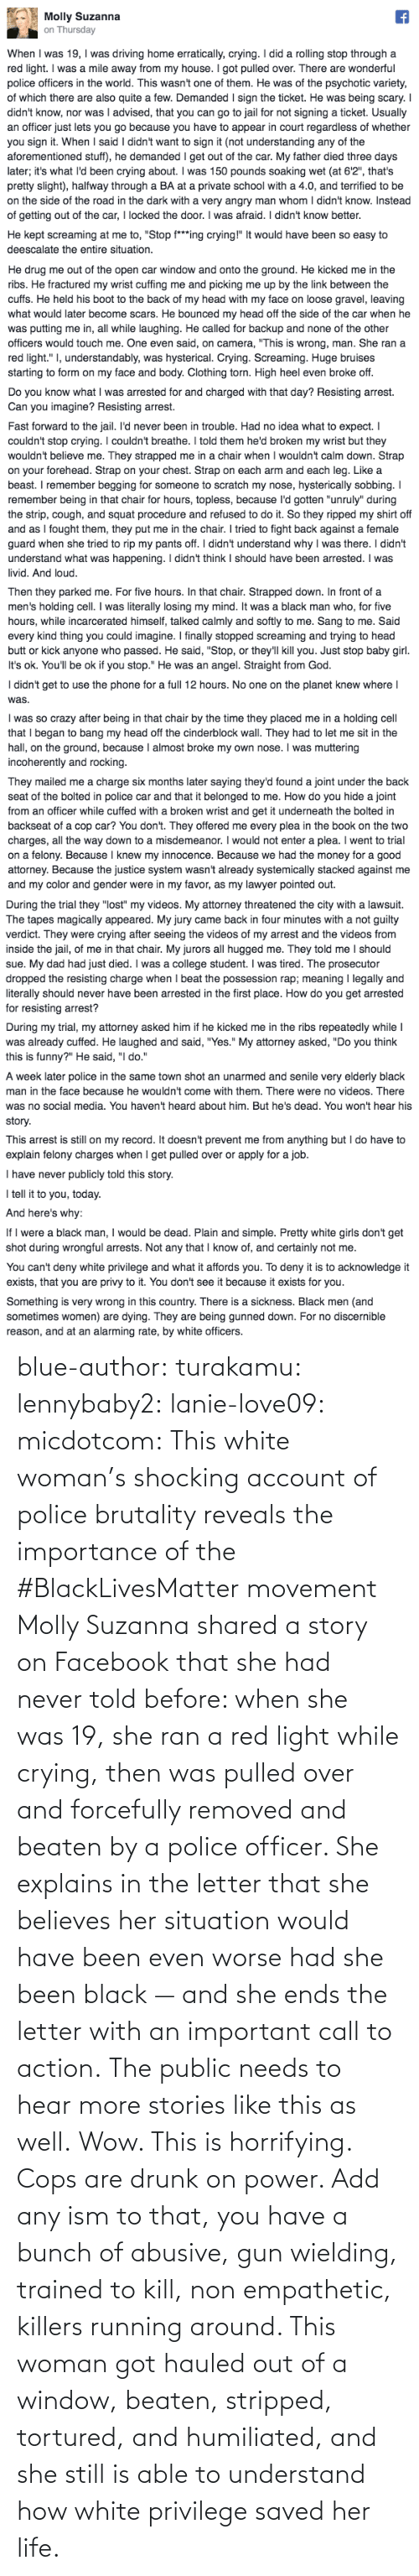 mic: blue-author: turakamu:  lennybaby2:  lanie-love09:  micdotcom:  This white woman's shocking account of police brutality reveals the importance of the #BlackLivesMatter movement Molly Suzanna shared a story on Facebook that she had never told before: when she was 19, she ran a red light while crying, then was pulled over and forcefully removed and beaten by a police officer. She explains in the letter that she believes her situation would have been even worse had she been black — and she ends the letter with an important call to action.  The public needs to hear more stories like this as well.  Wow. This is horrifying.  Cops are drunk on power. Add any ism to that, you have a bunch of abusive, gun wielding, trained to kill, non empathetic, killers running around.    This woman got hauled out of a window, beaten, stripped, tortured, and humiliated, and she still is able to understand how white privilege saved her life.